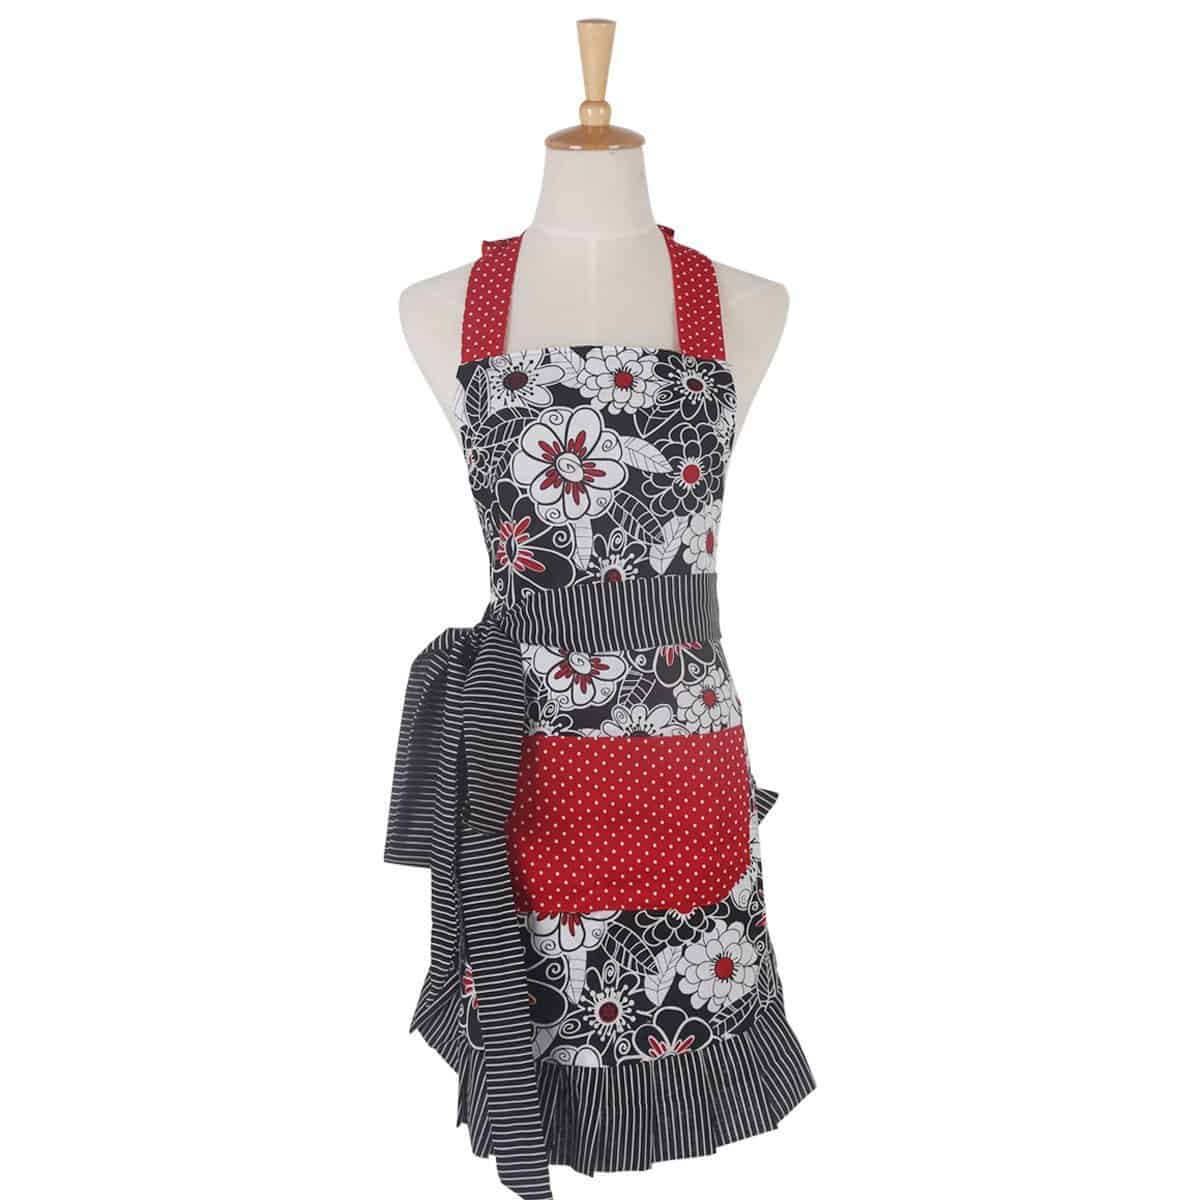 Red & Black Floral & Polka-Dot Apron | 2015 Holiday Gift Guide for Foodies @ FiveHeartHome.com